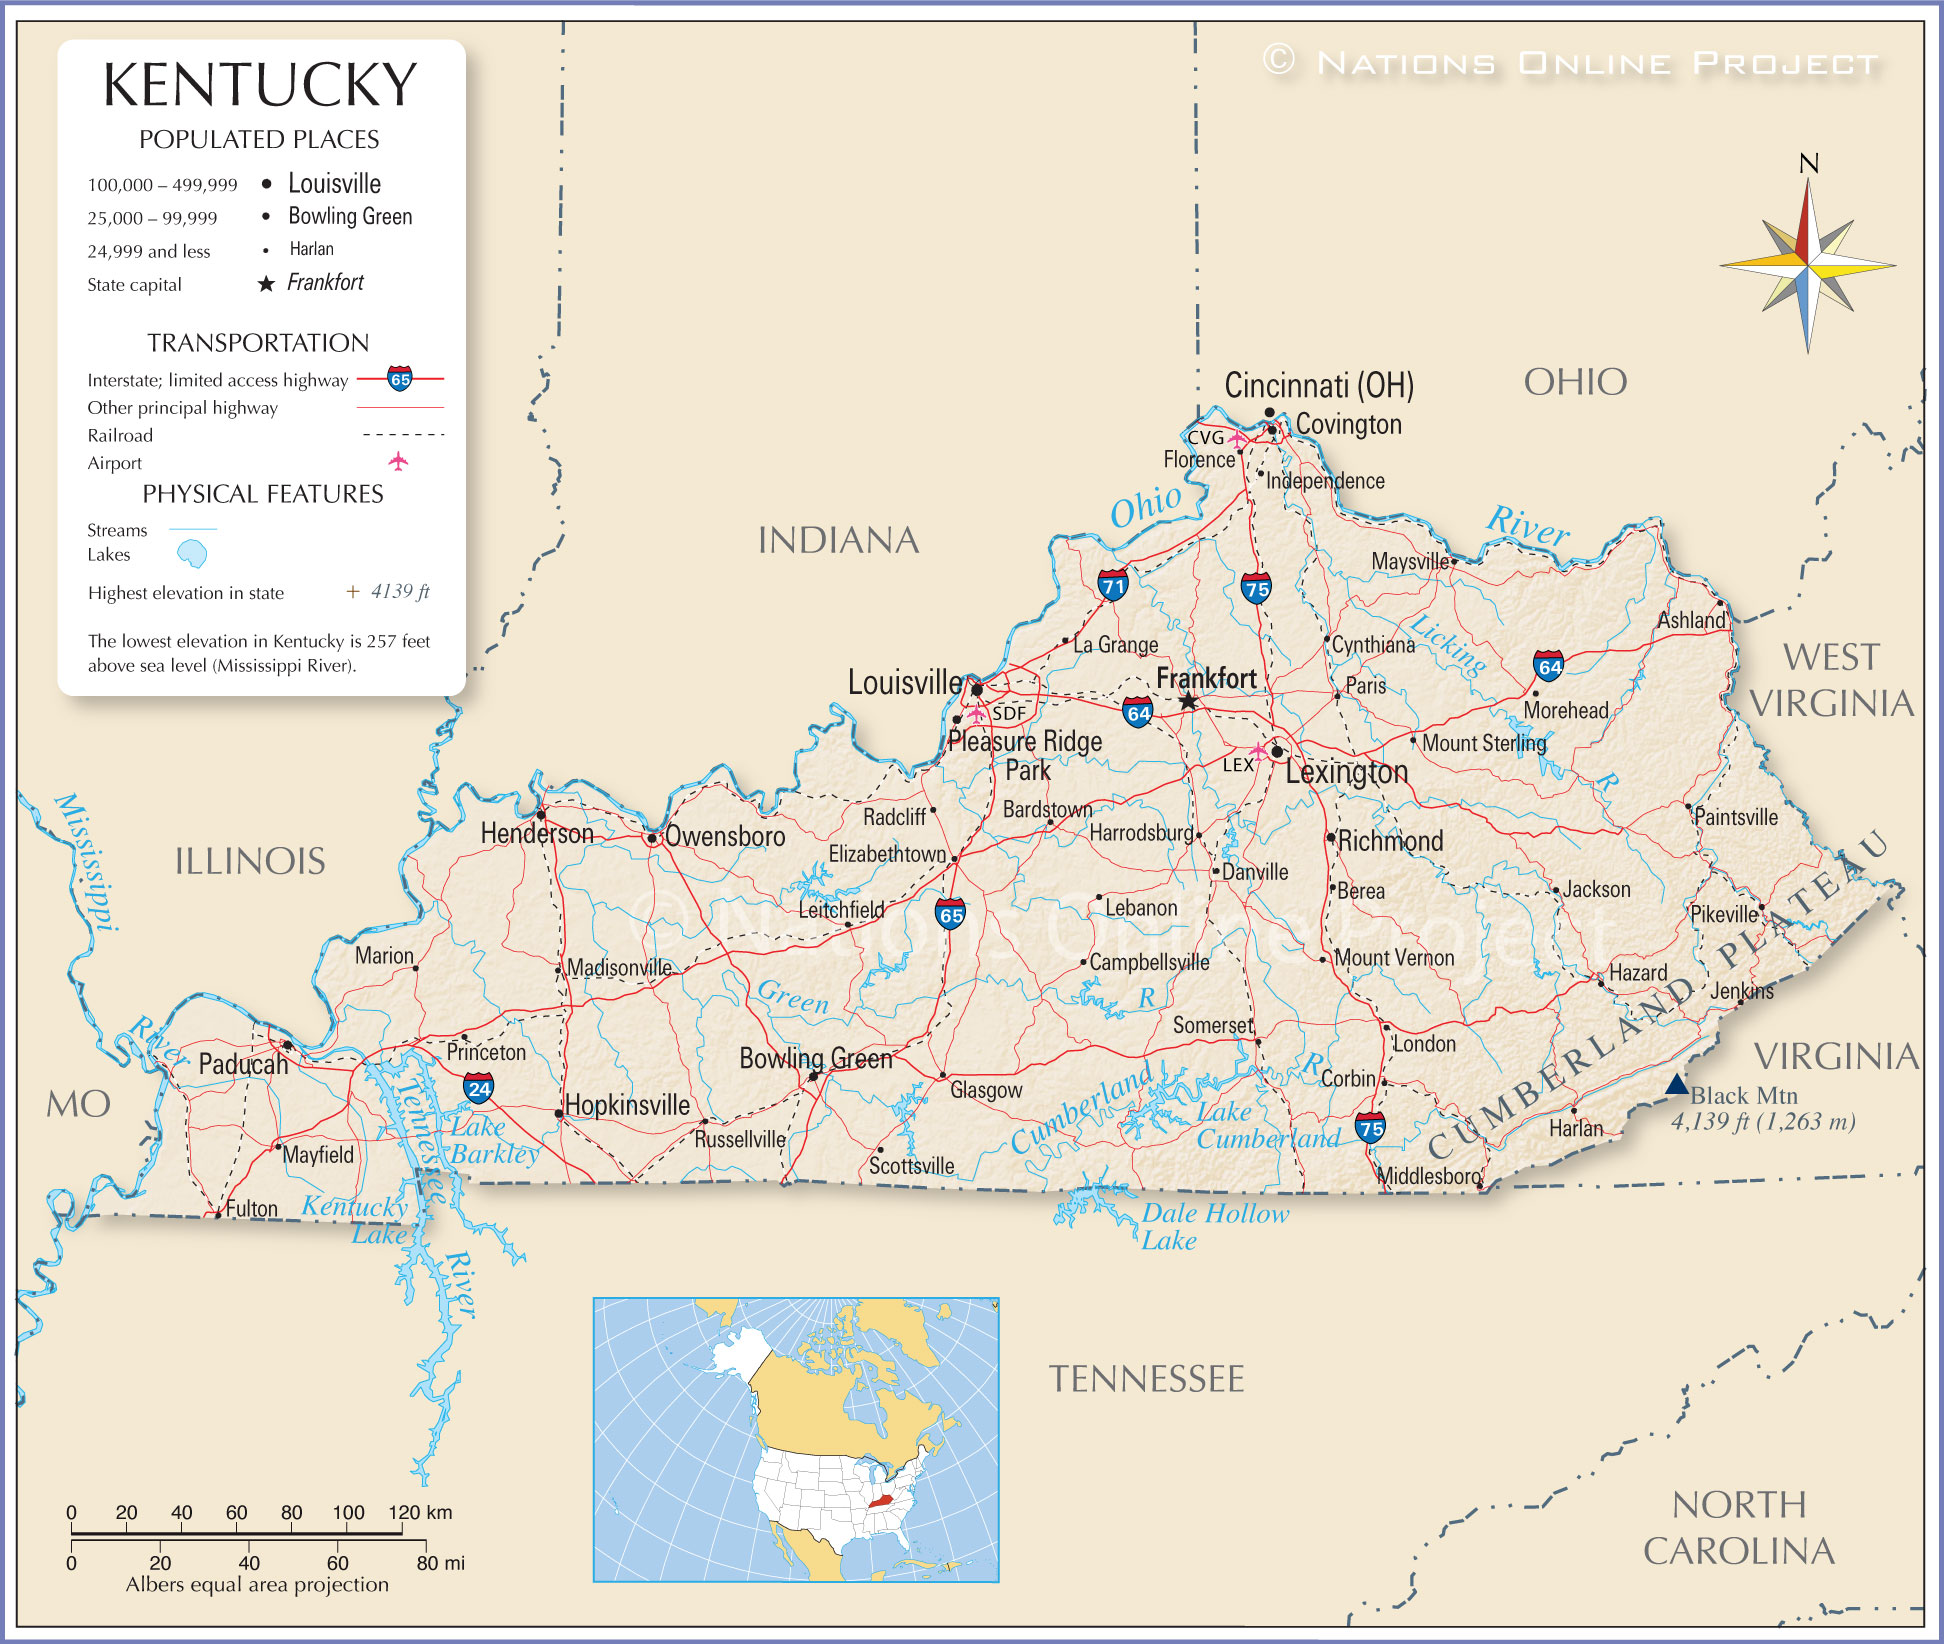 Reference Maps of Kentucky, USA - Nations Online Project on map of petersburg kentucky, map of bowling green kentucky, map of kentucky state, map of united states of america, map illinois cities, map of tennessee, map of loretto kentucky, map of kentucky roads, map of kentucky county, map of kentucky usa, map of kentucky lakes, map of kentucky counties, map of newport kentucky, map of kentucky zip codes, kentucky towns and cities, map of north carolina, map of ky, map of western kentucky, map of kentucky streets, map of arkansas,